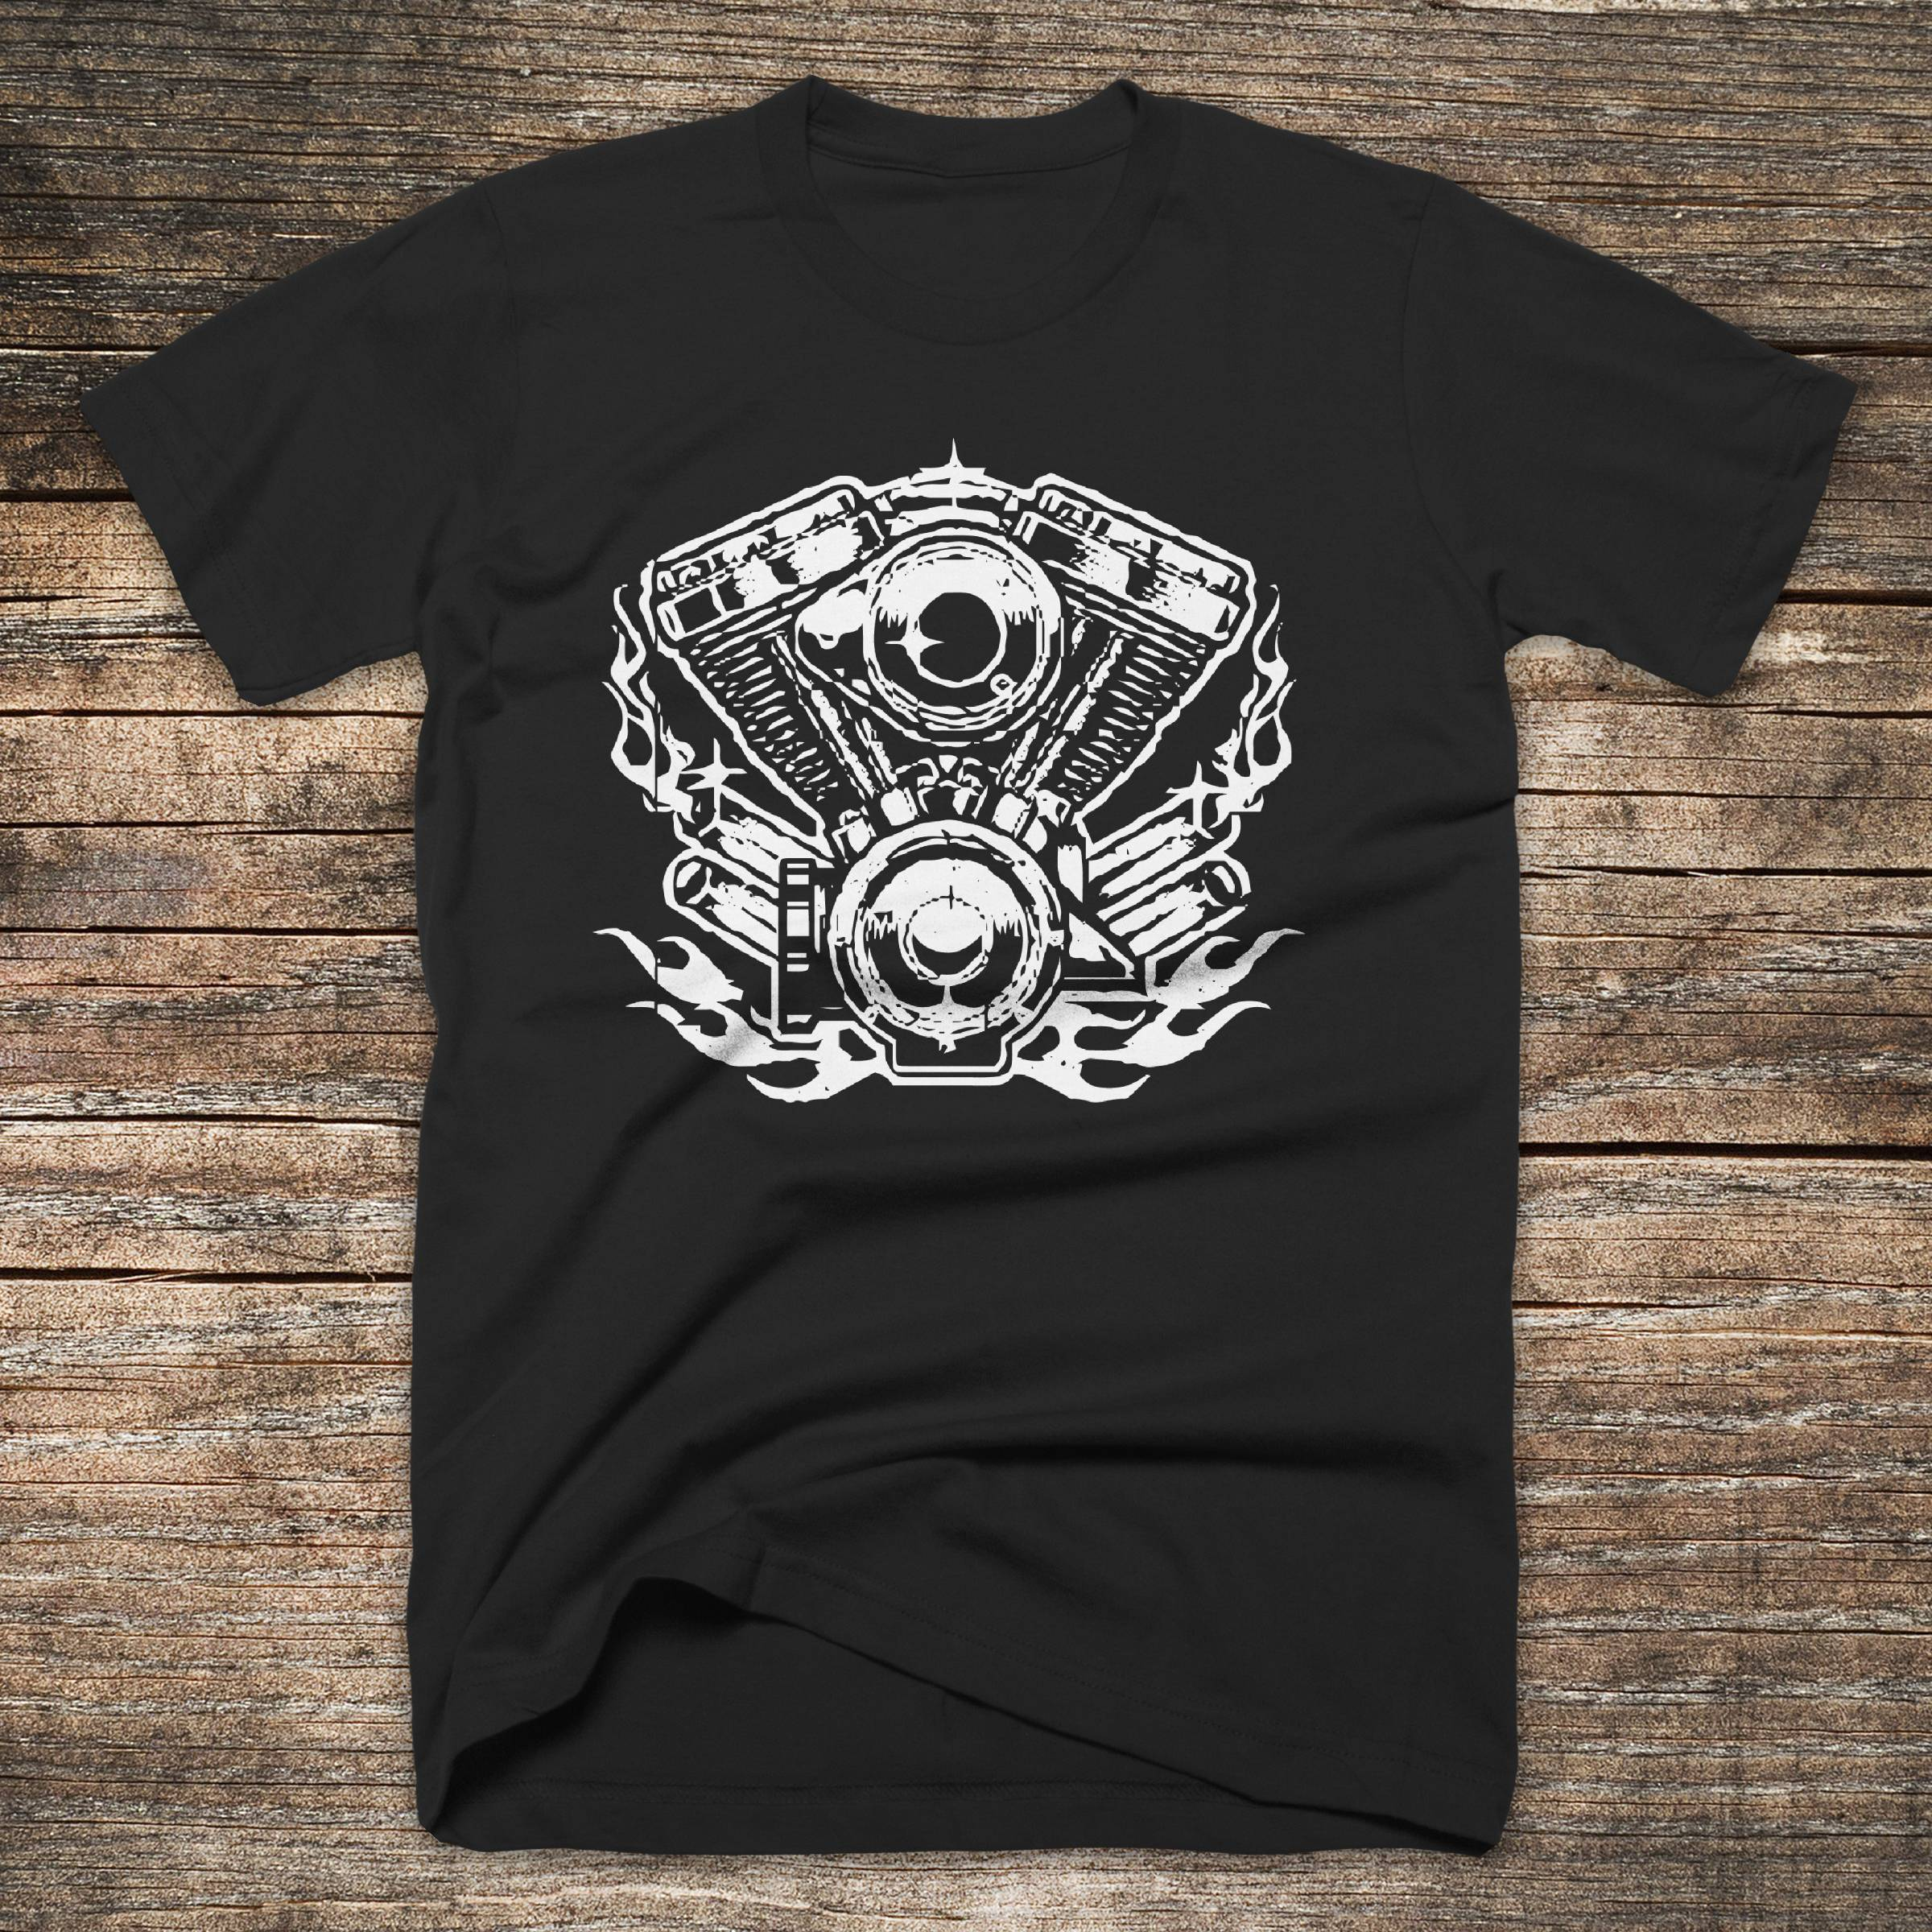 I will do a minimalist gorgeous T-Shirt Design for you